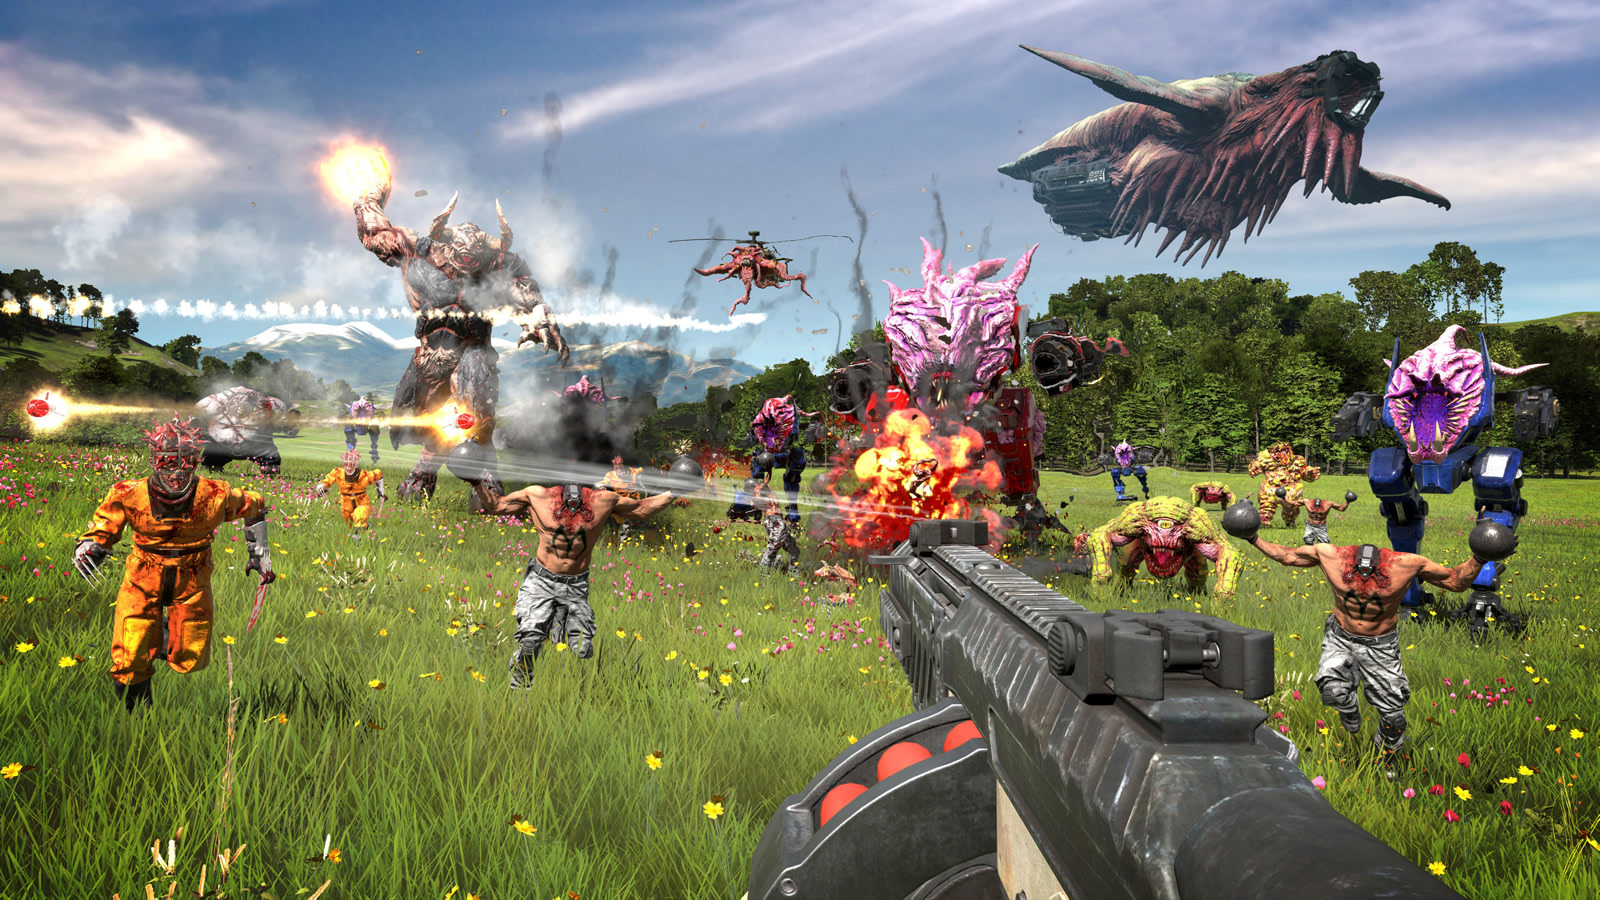 Serious Sam 4' arrives on PC and Stadia in August | Engadget